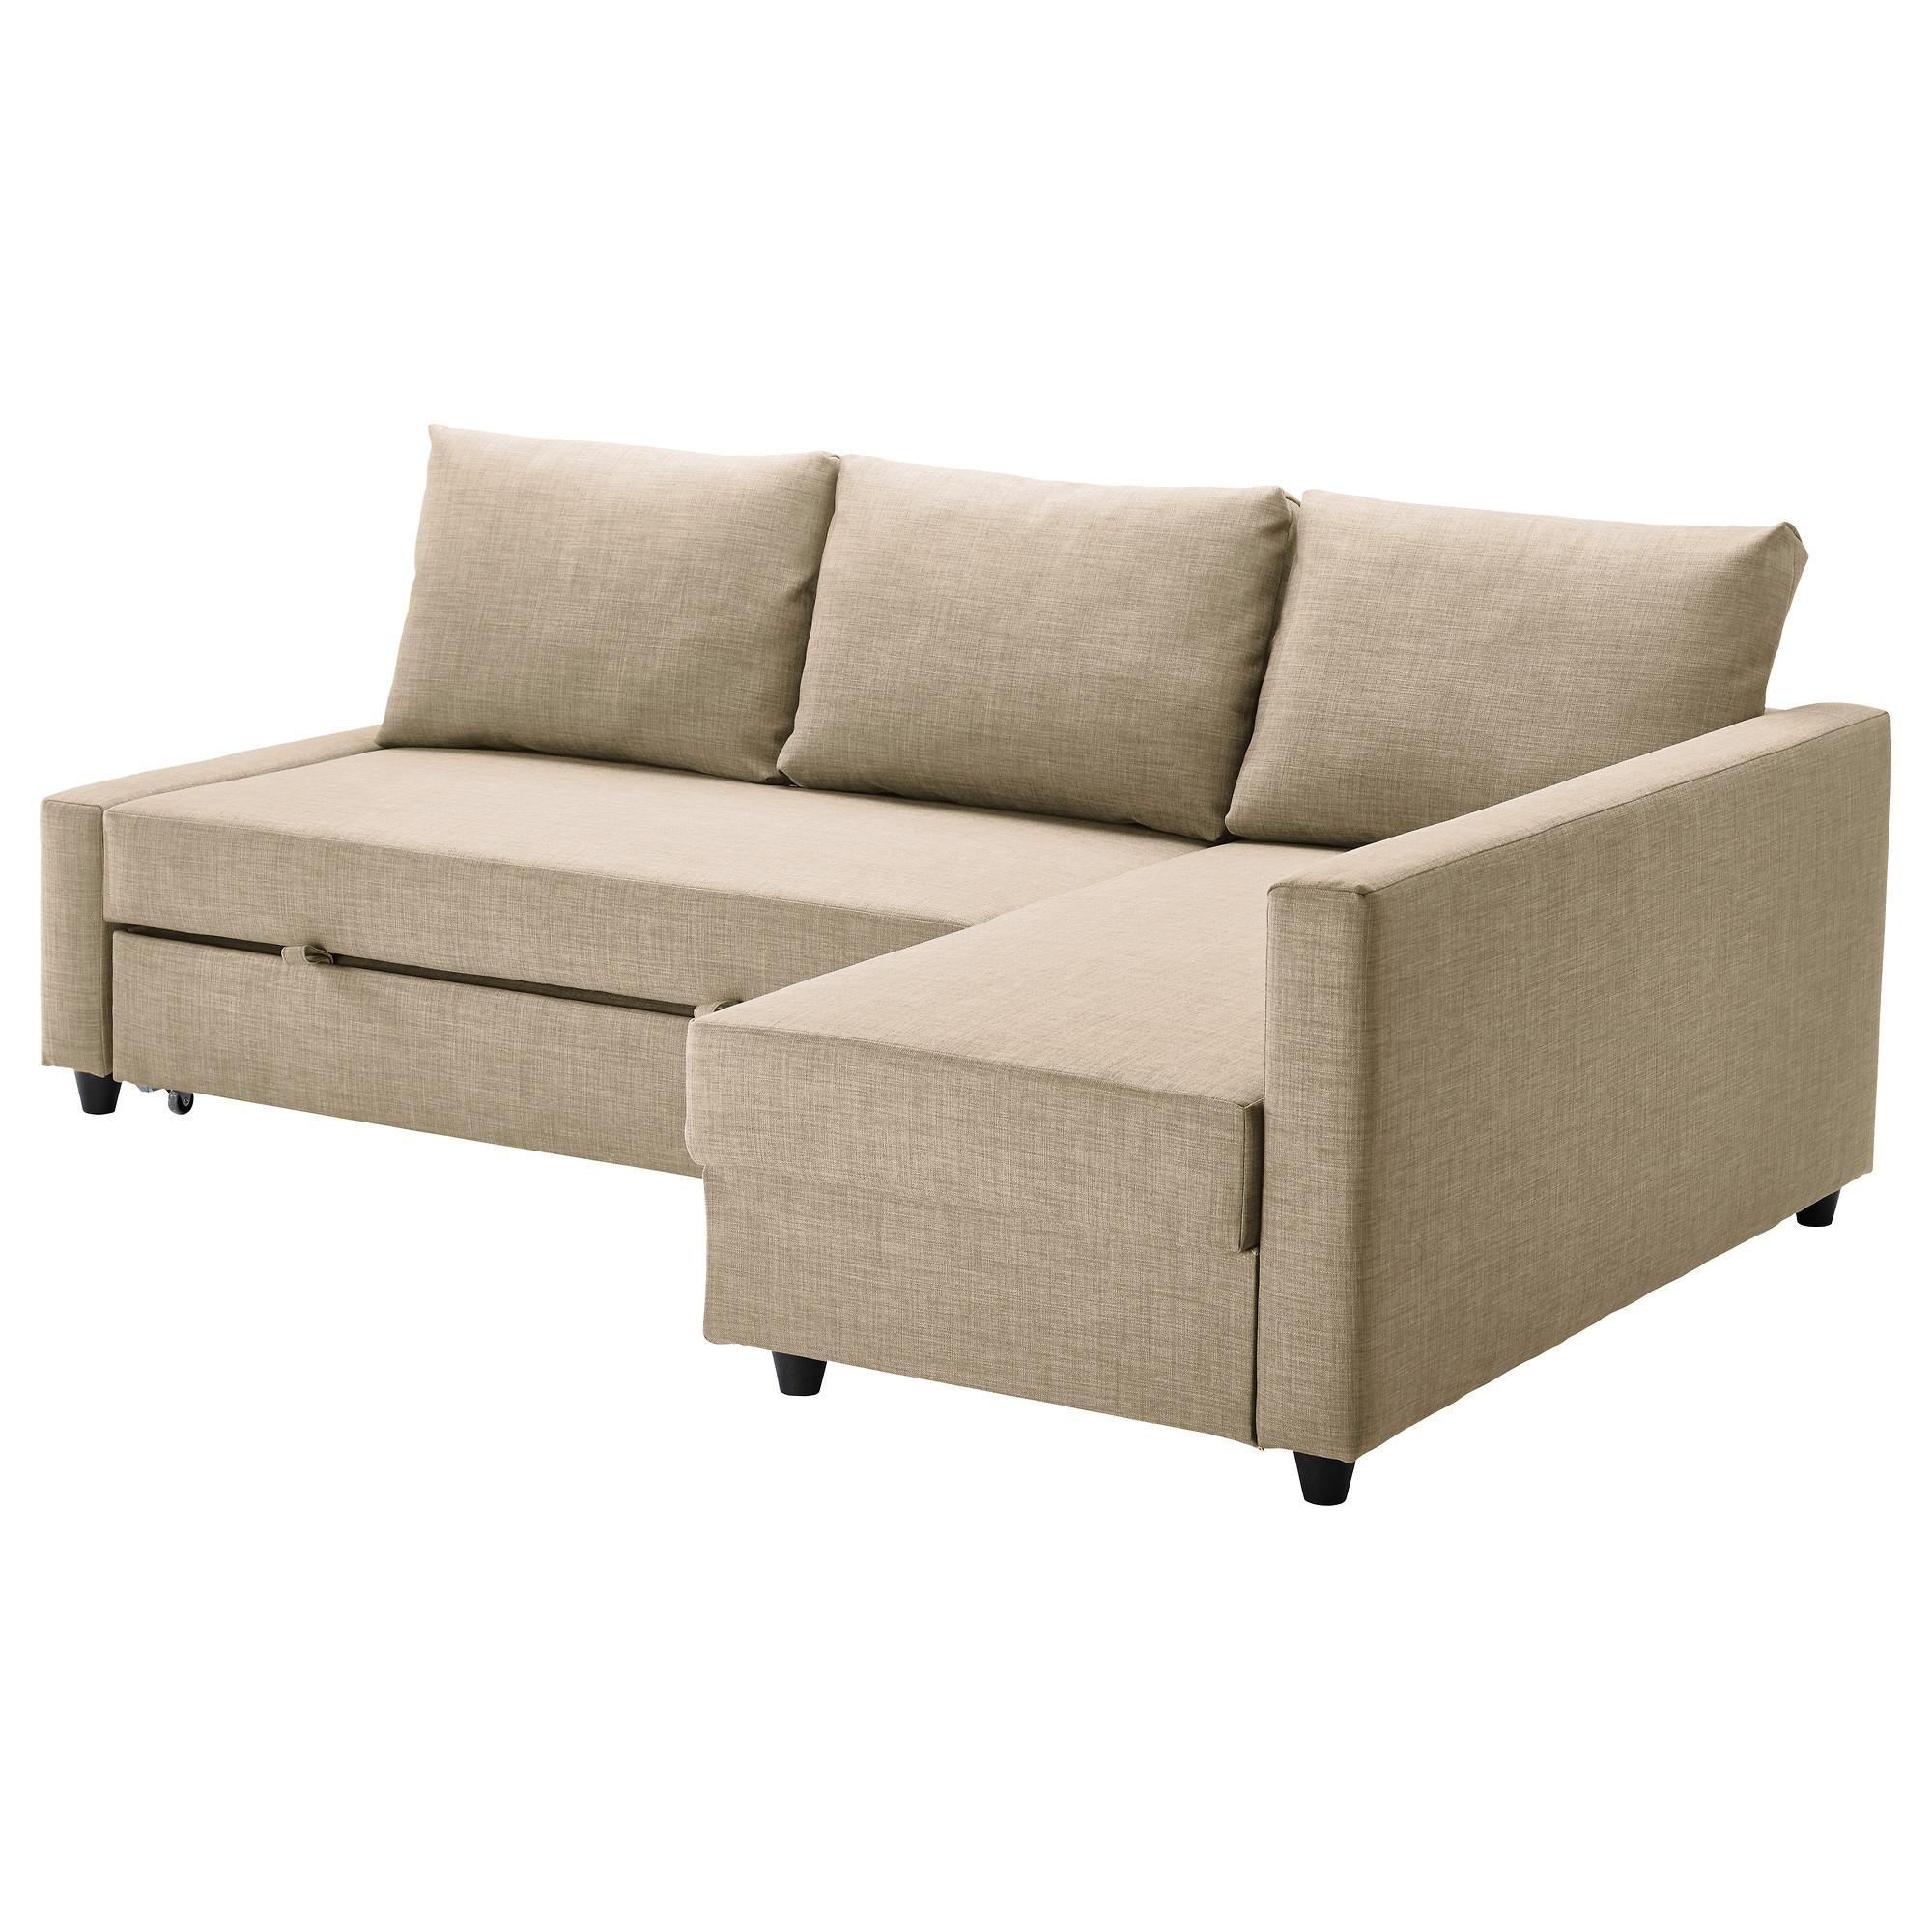 Friheten Sleeper Sectional,3 Seat W/storage – Skiftebo Dark Gray With Regard To Sectional Sofa Beds (View 17 of 20)